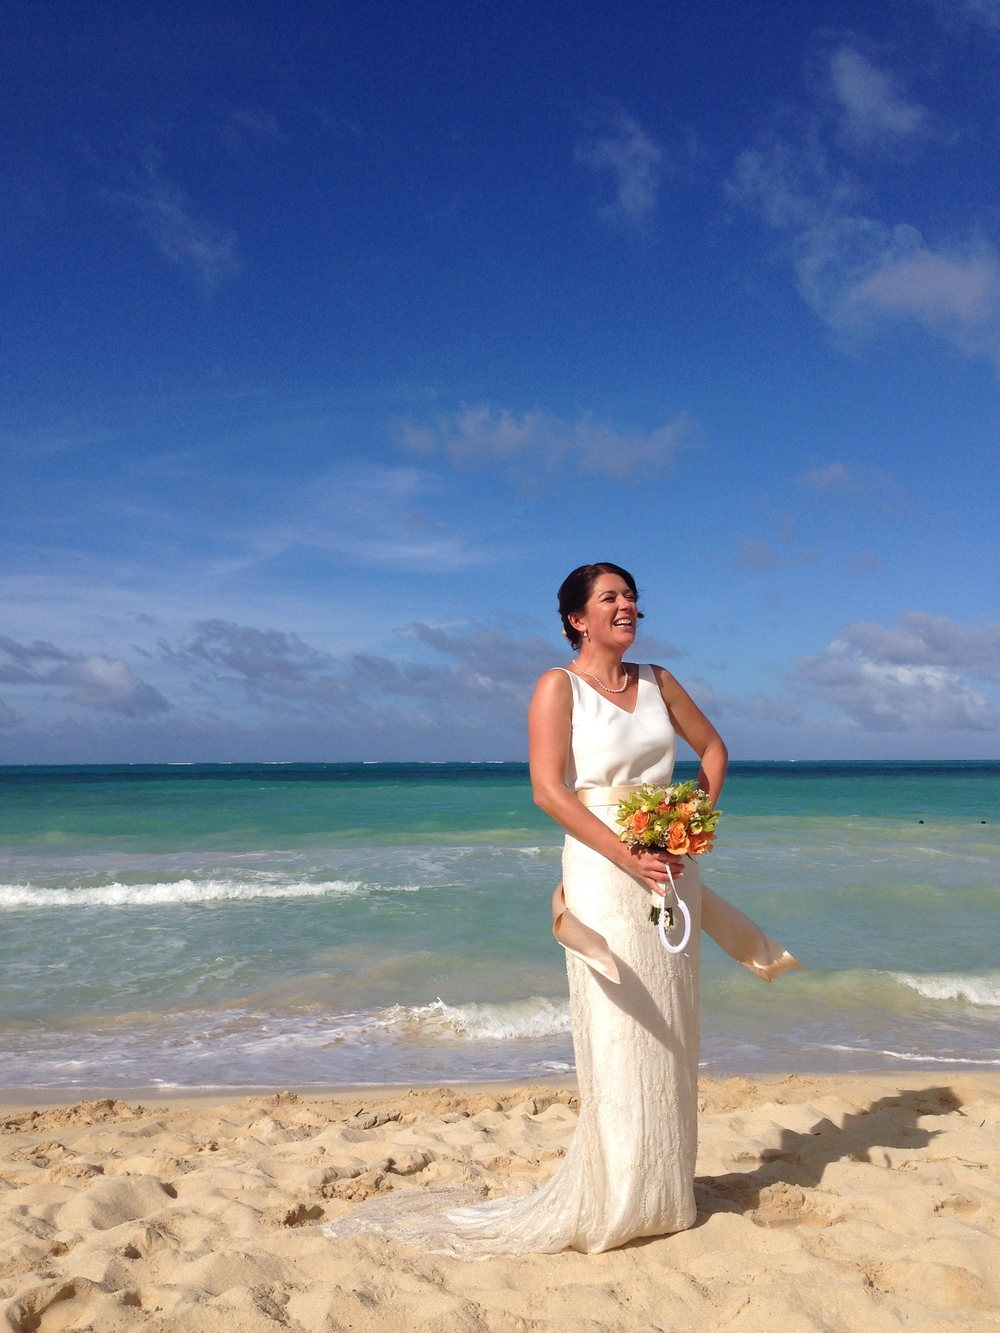 dan-lucy-waimanalo-beach-wedding-3.jpg